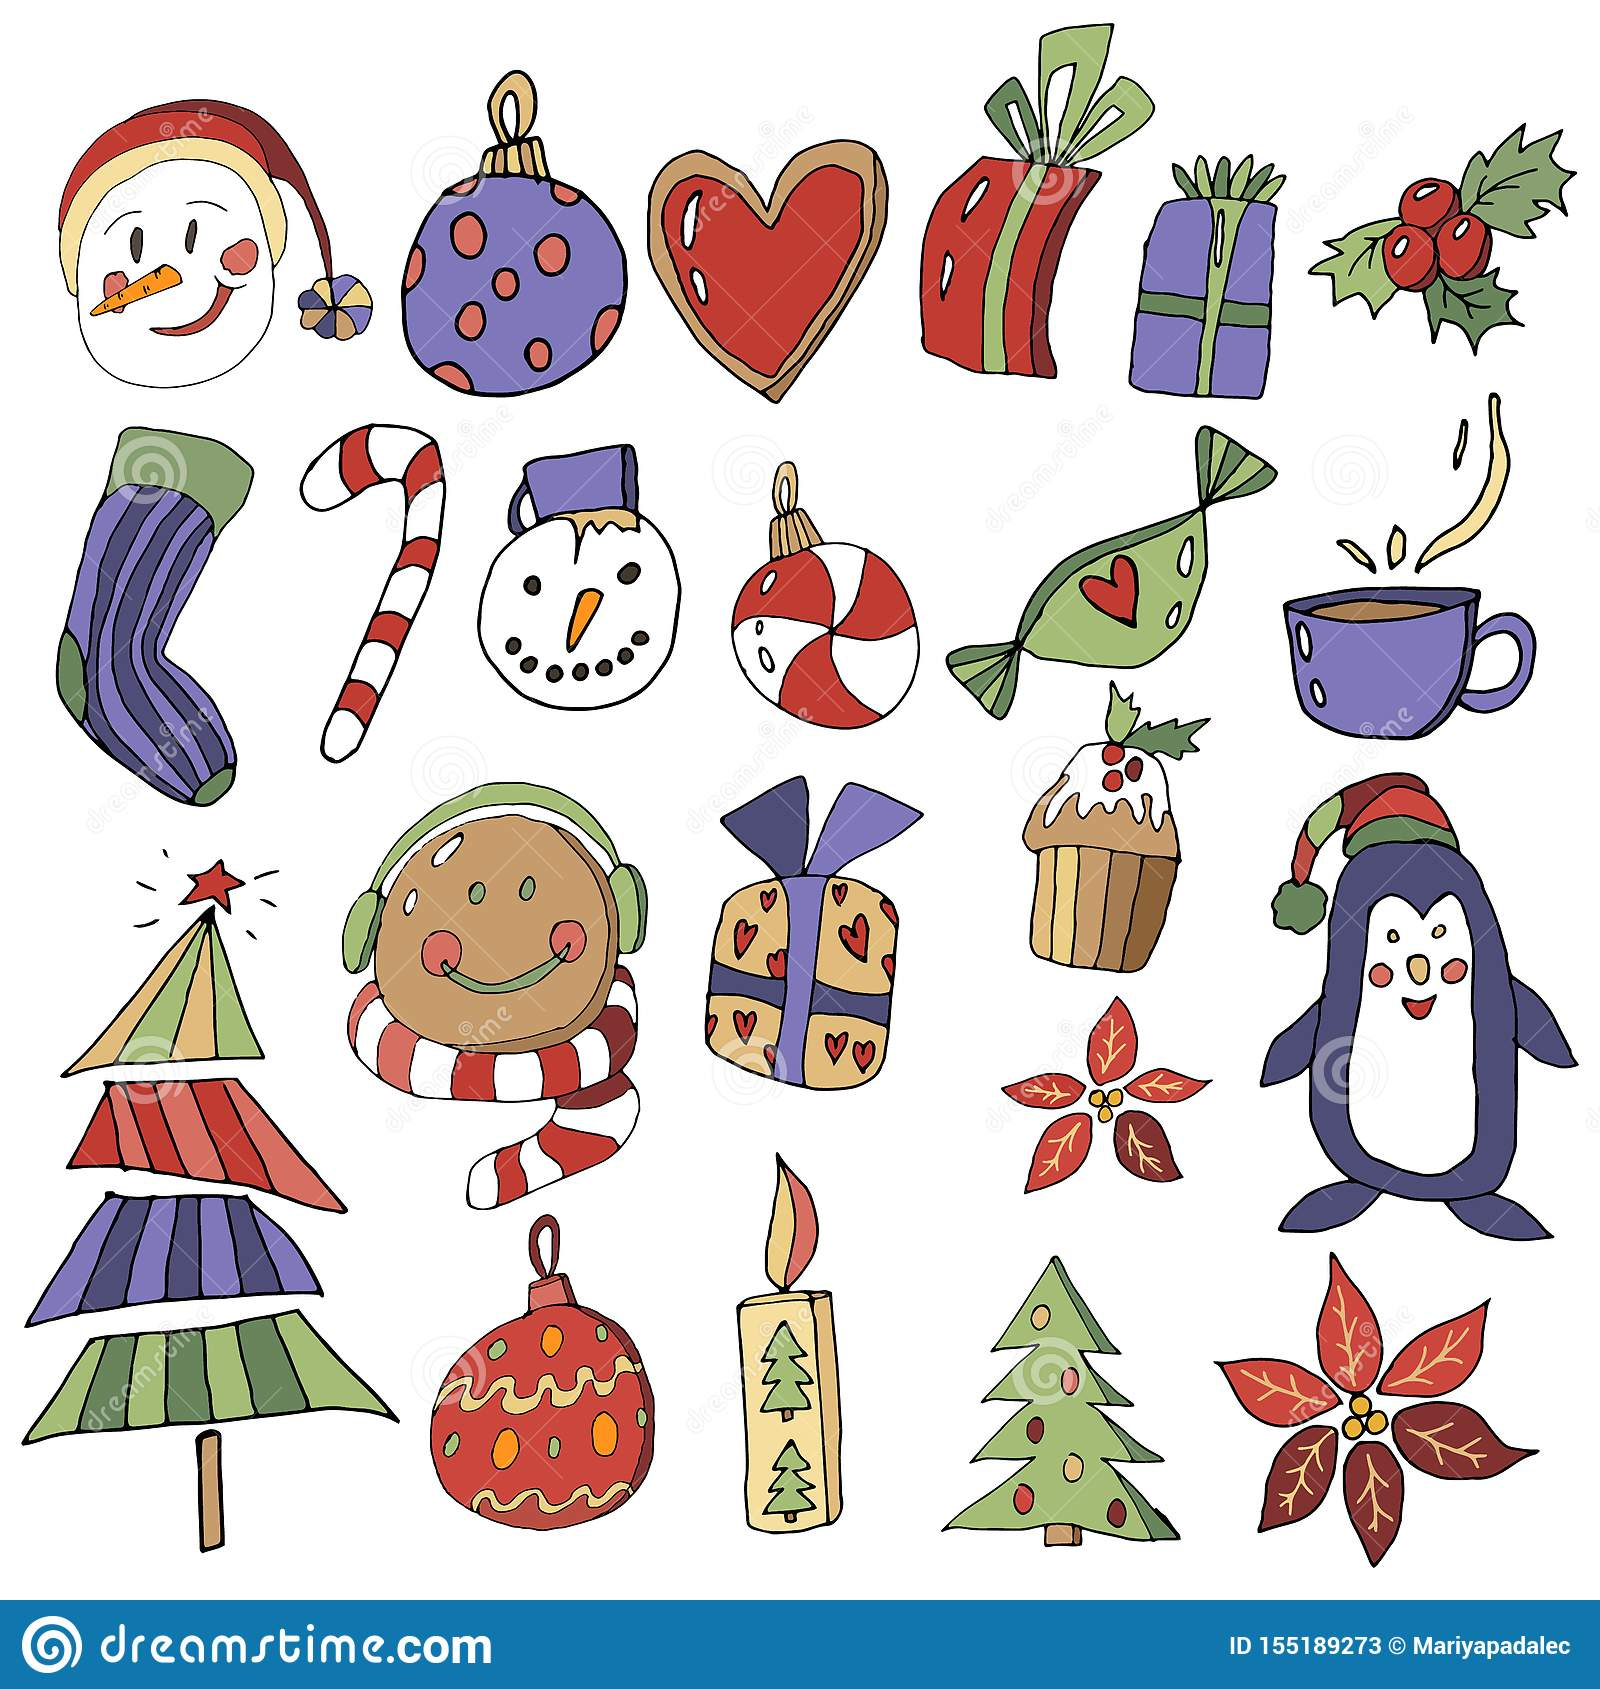 new years eve clipart christmas set with cartoon new year characters collection of xmas elements for greeting card design in stock illustration illustration of merry tree 155189273 dreamstime com